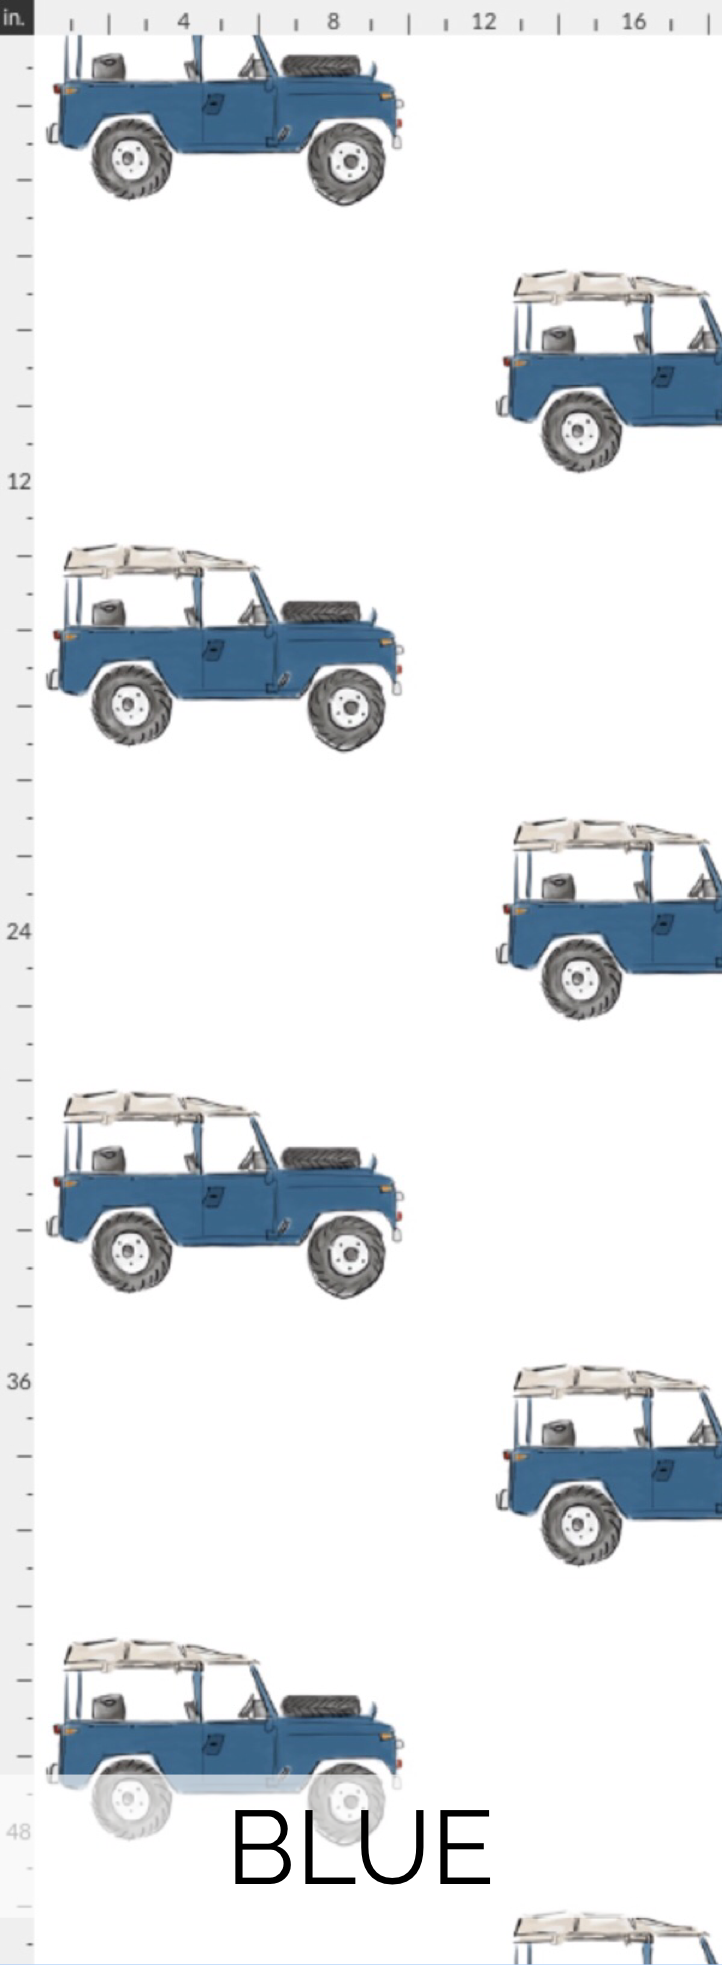 ROVER (2 colorways)